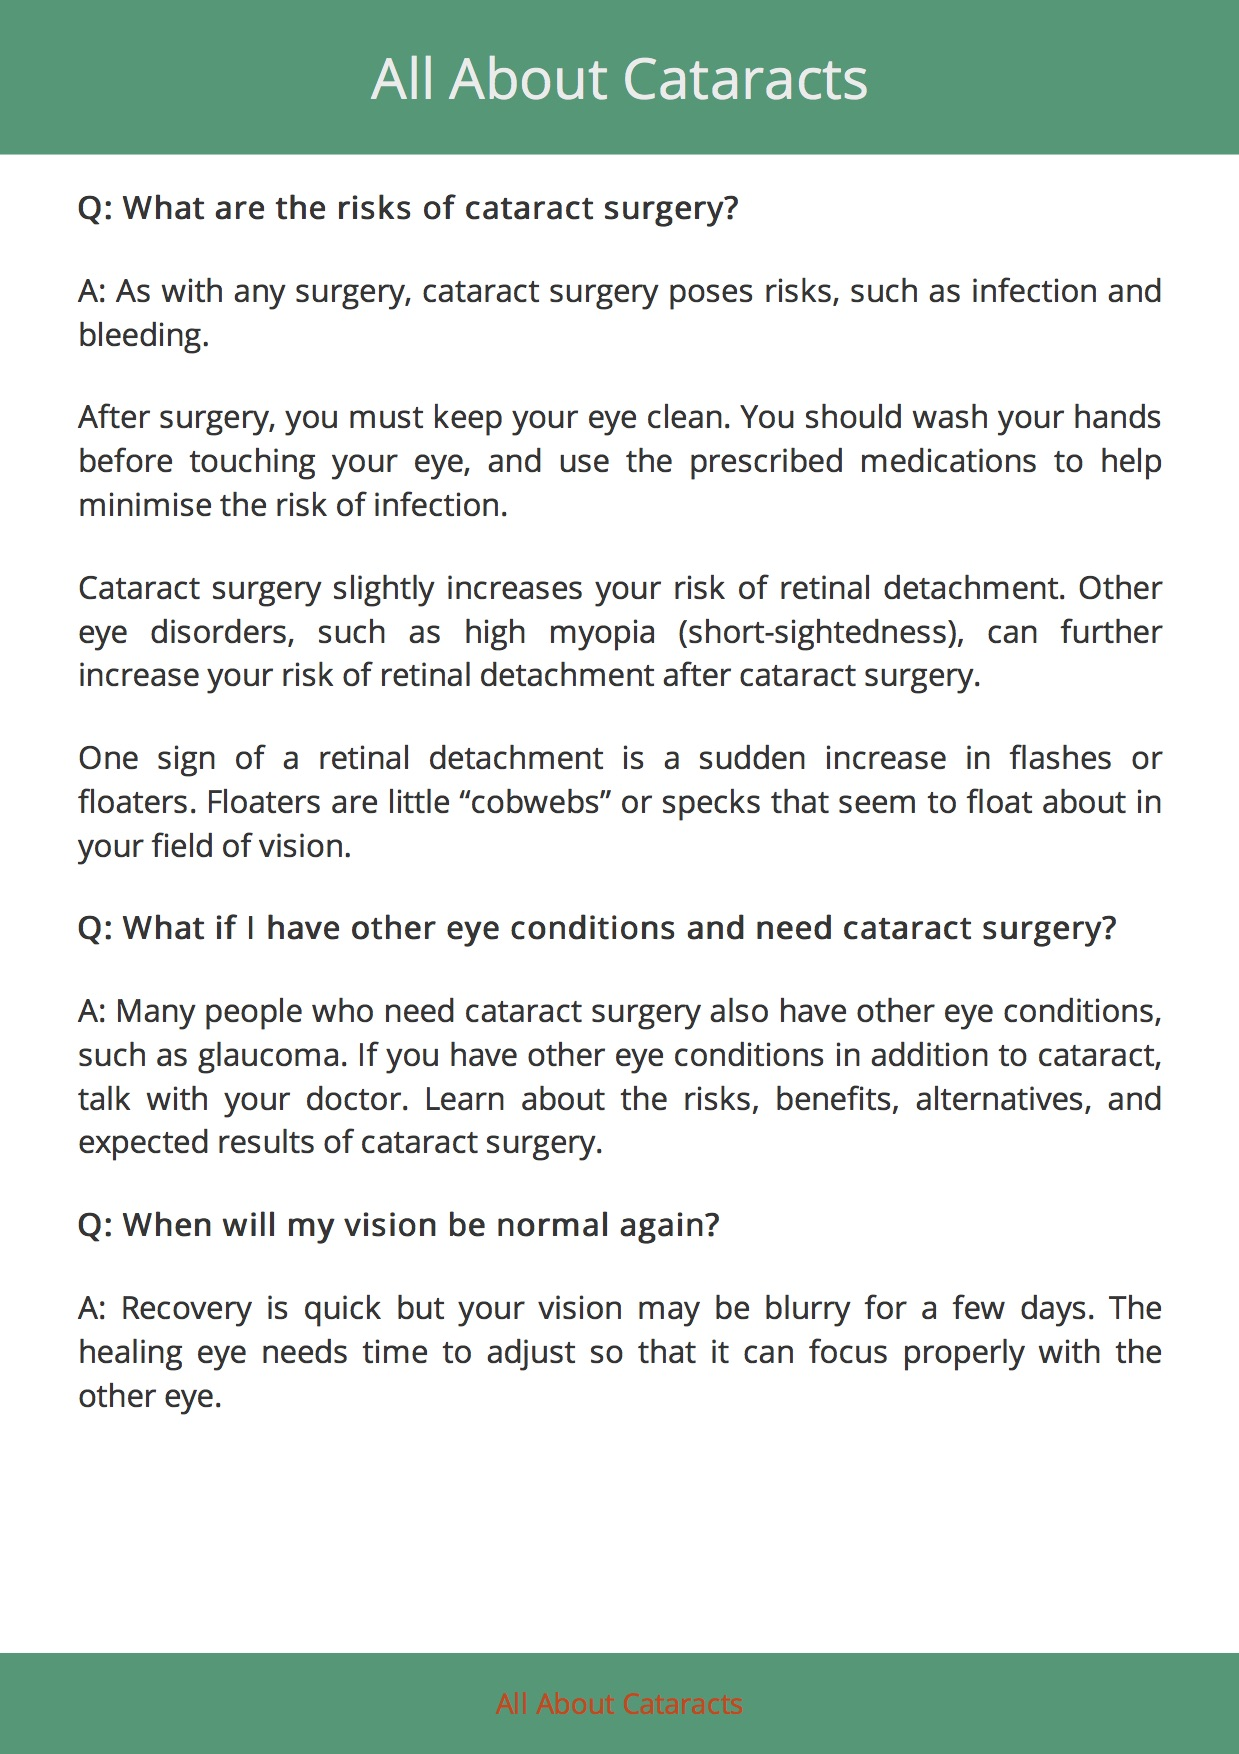 All About Cataracts 11